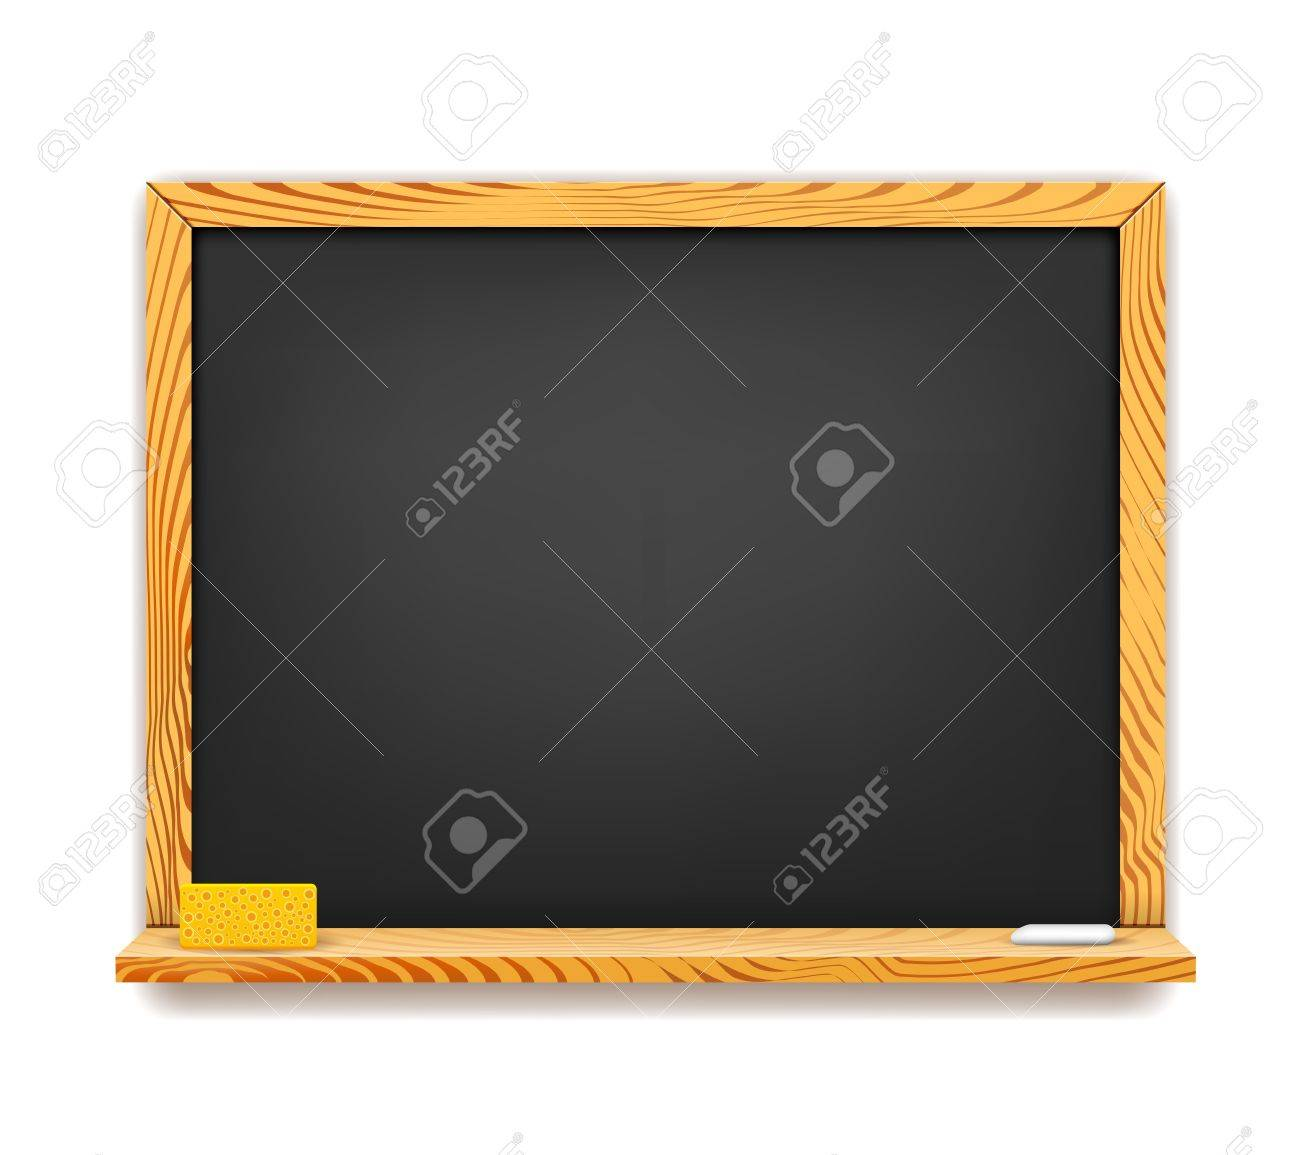 School blackboard background isolated on white Stock Vector - 17750993